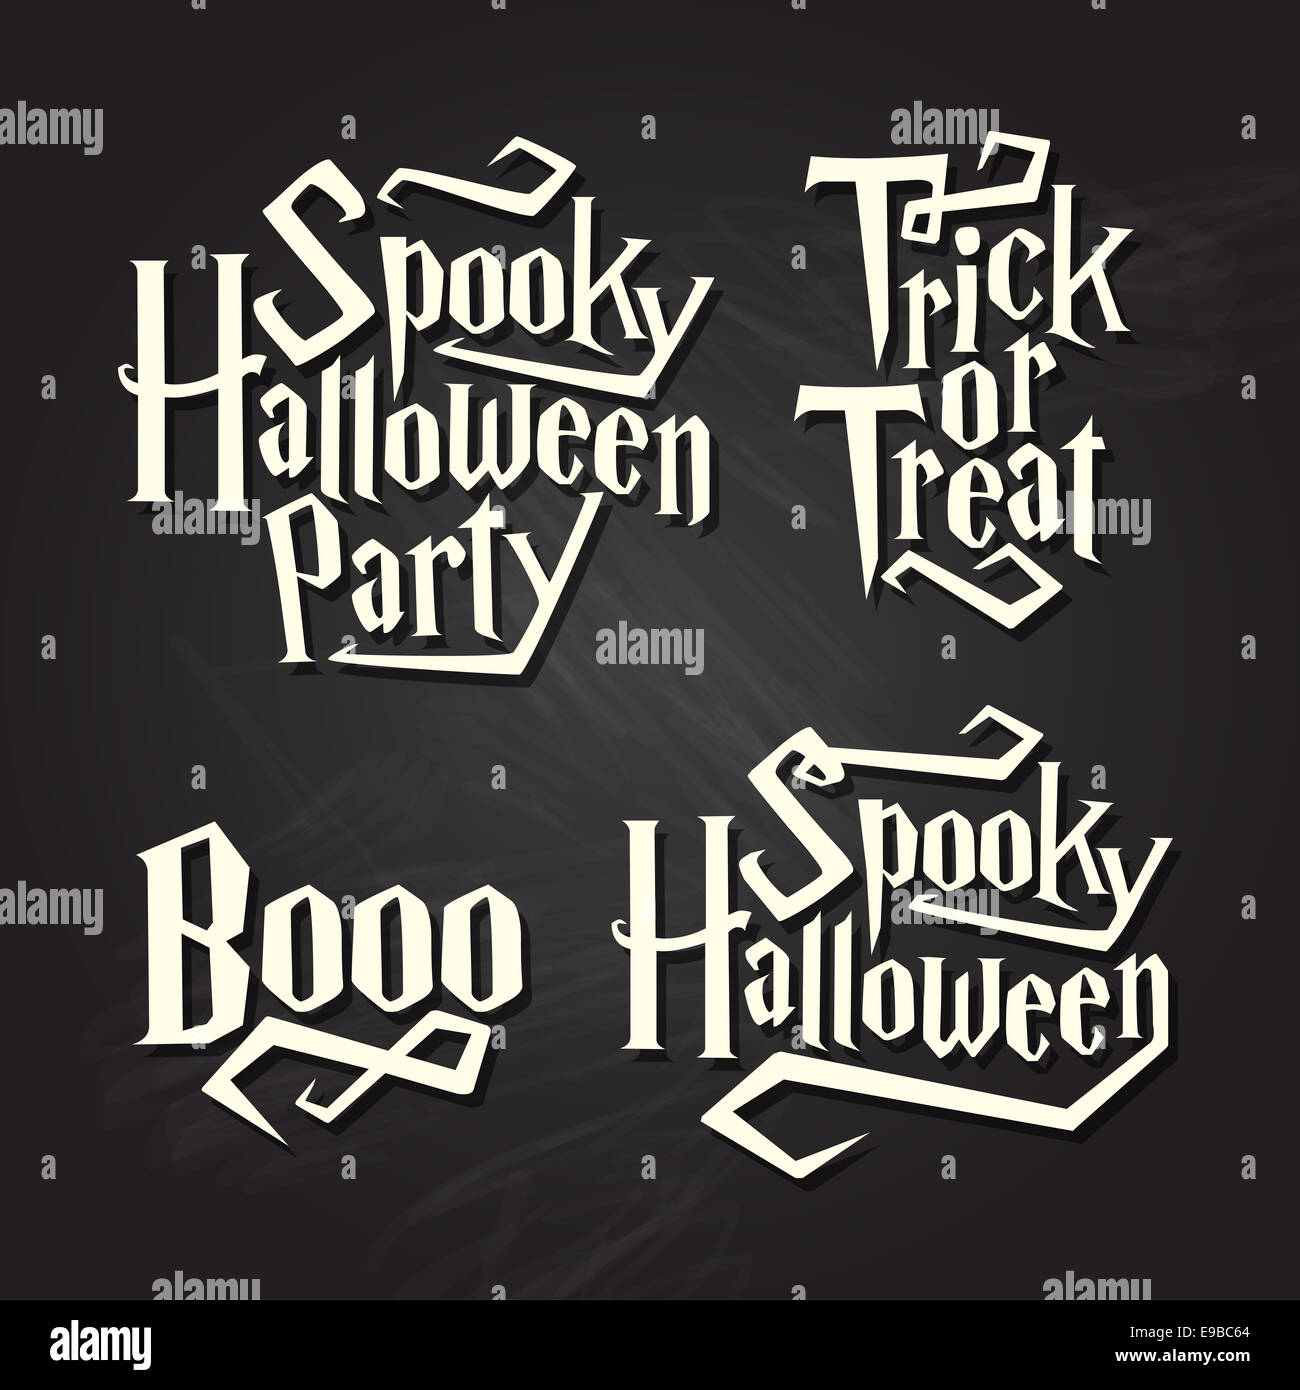 spooky halloween quotes on black chalkboard background stock photo